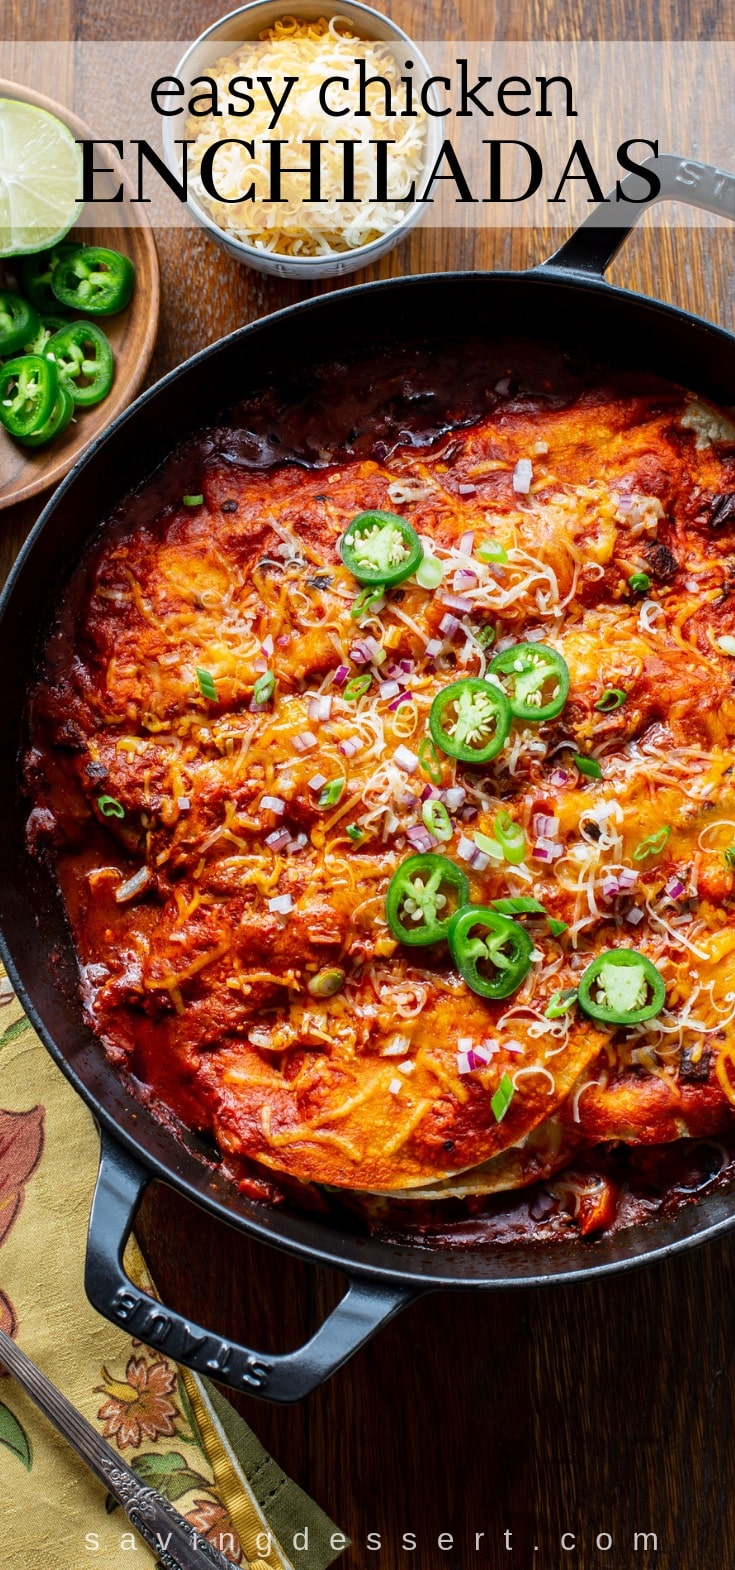 Easy Chicken Enchiladas Recipe is quick, flavorful and satisfying, with smoky heat from the chipotle peppers in adobo sauce. #enchiladas #chickenenchiladas #easydinner #30minutemeal #enchiladarecipe #mexicanfood #texmex